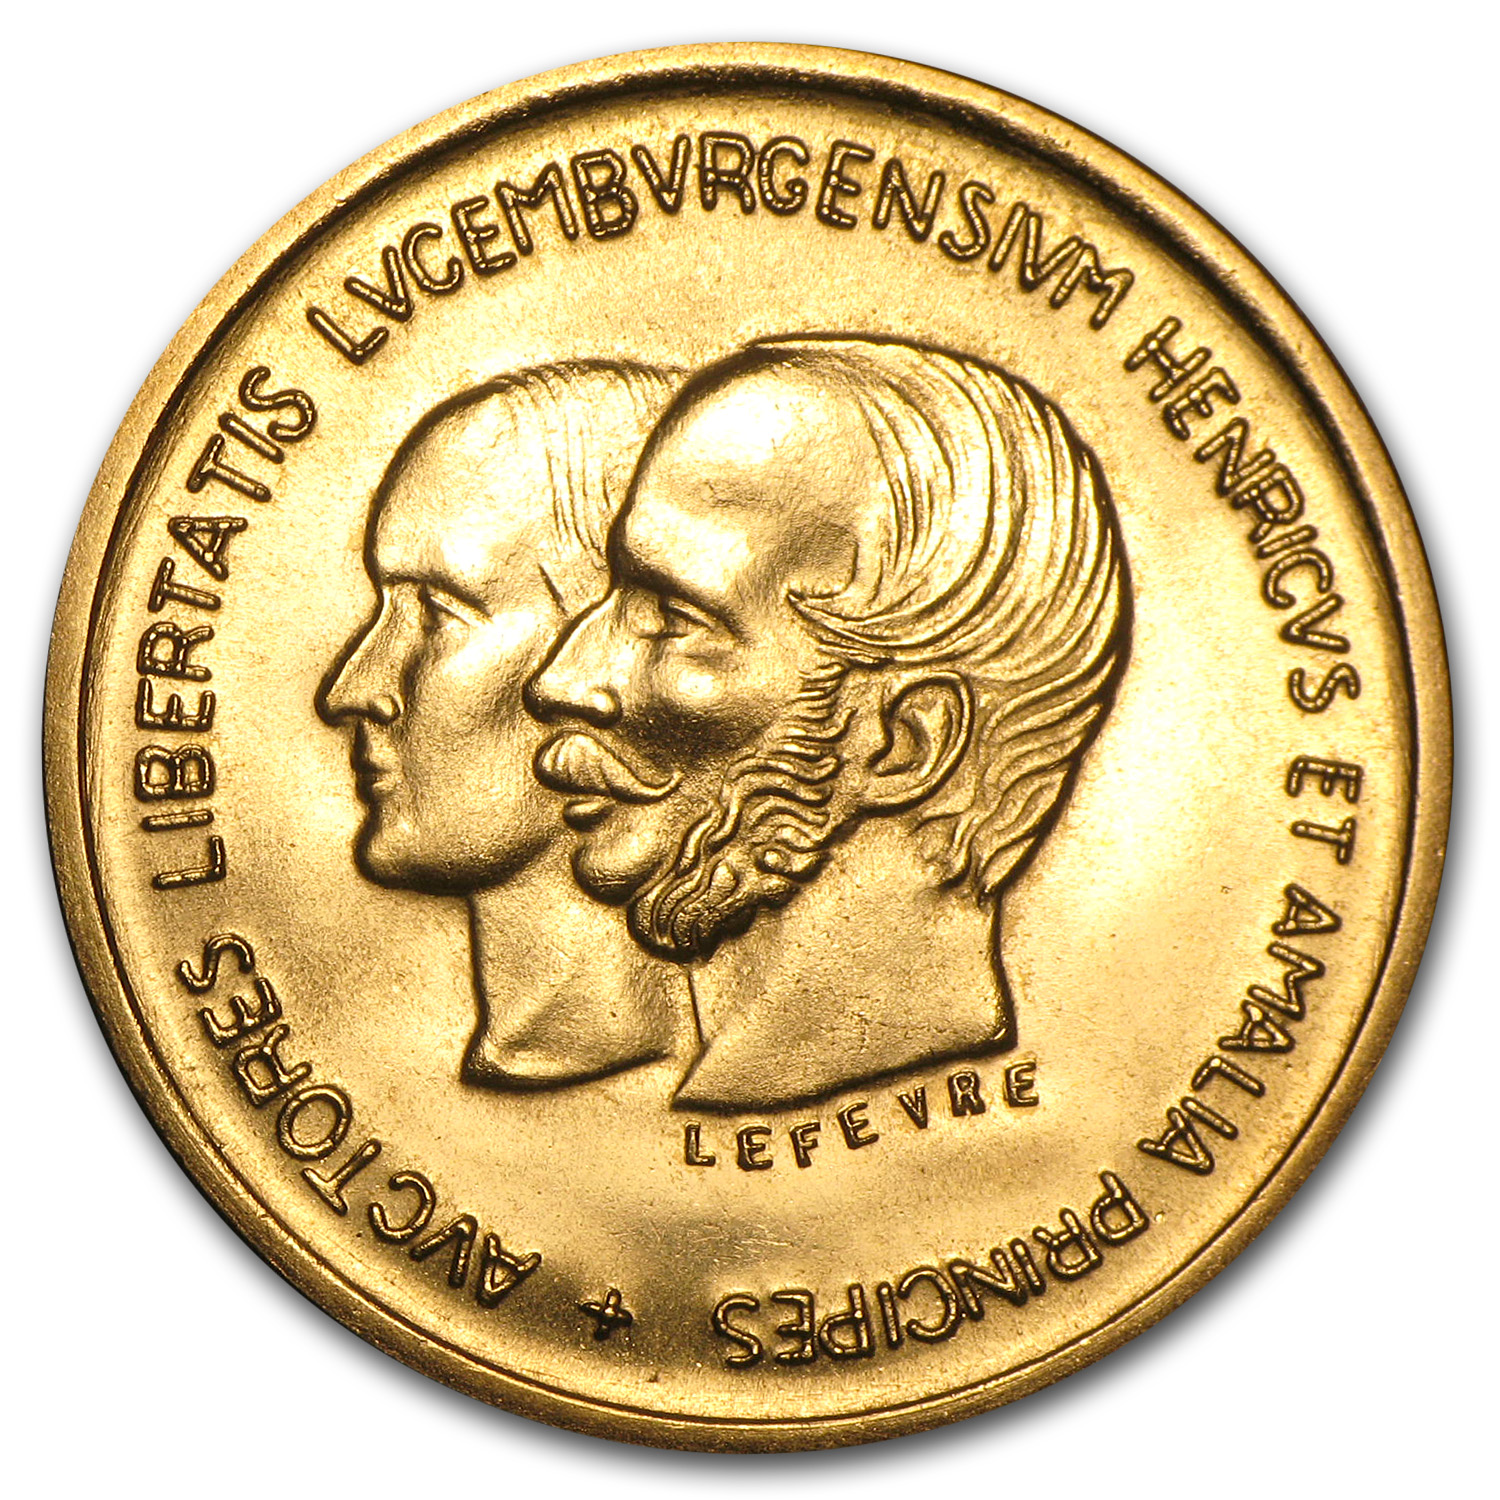 Luxembourg 1967 Gold Medal (Centennial--Treaty of London)